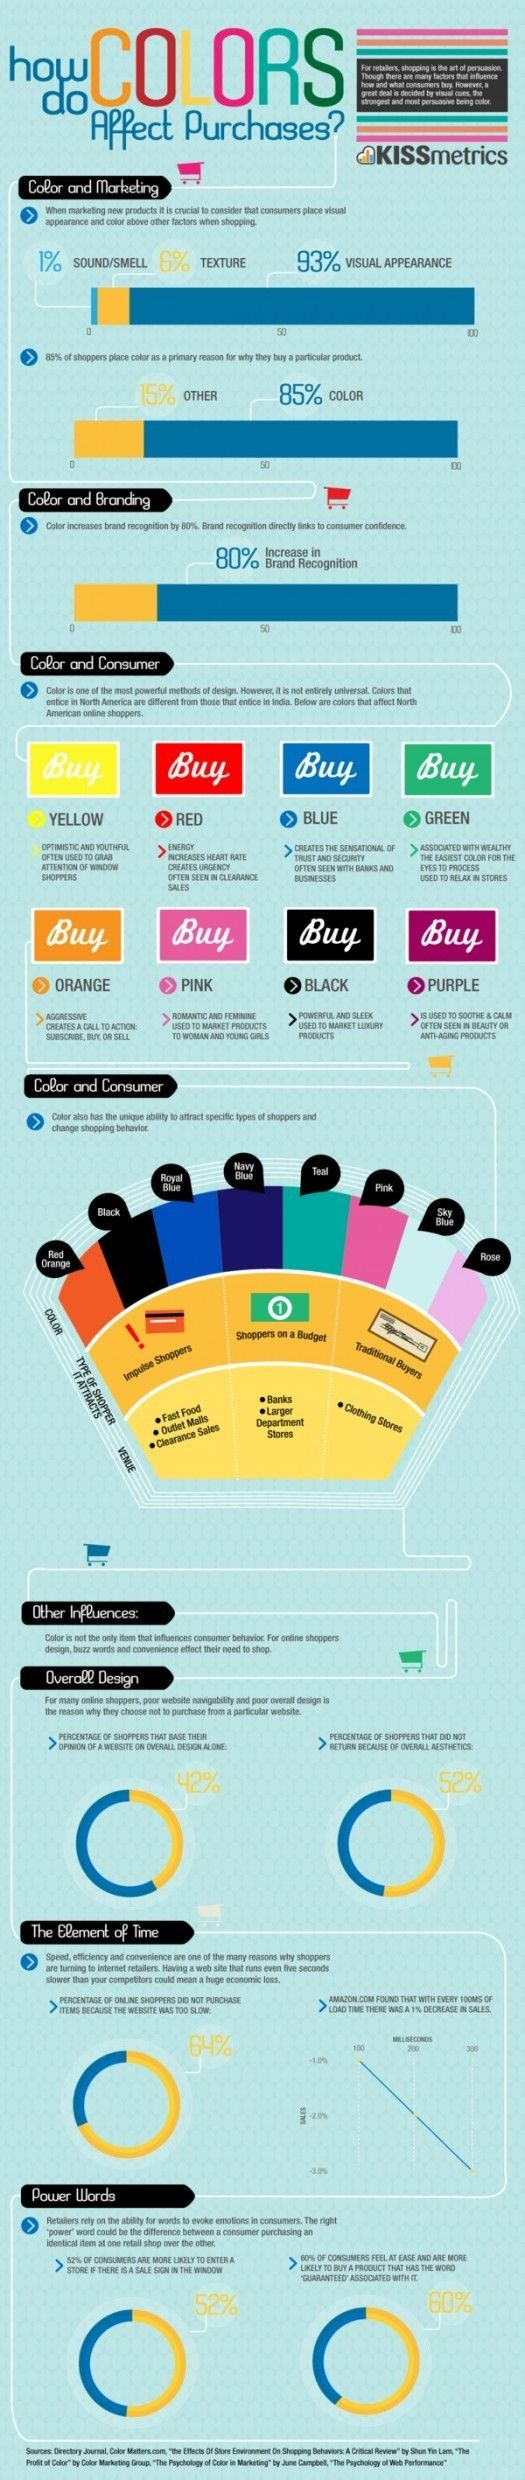 66 best Color images on Pinterest | Knowledge, Languages and Signs